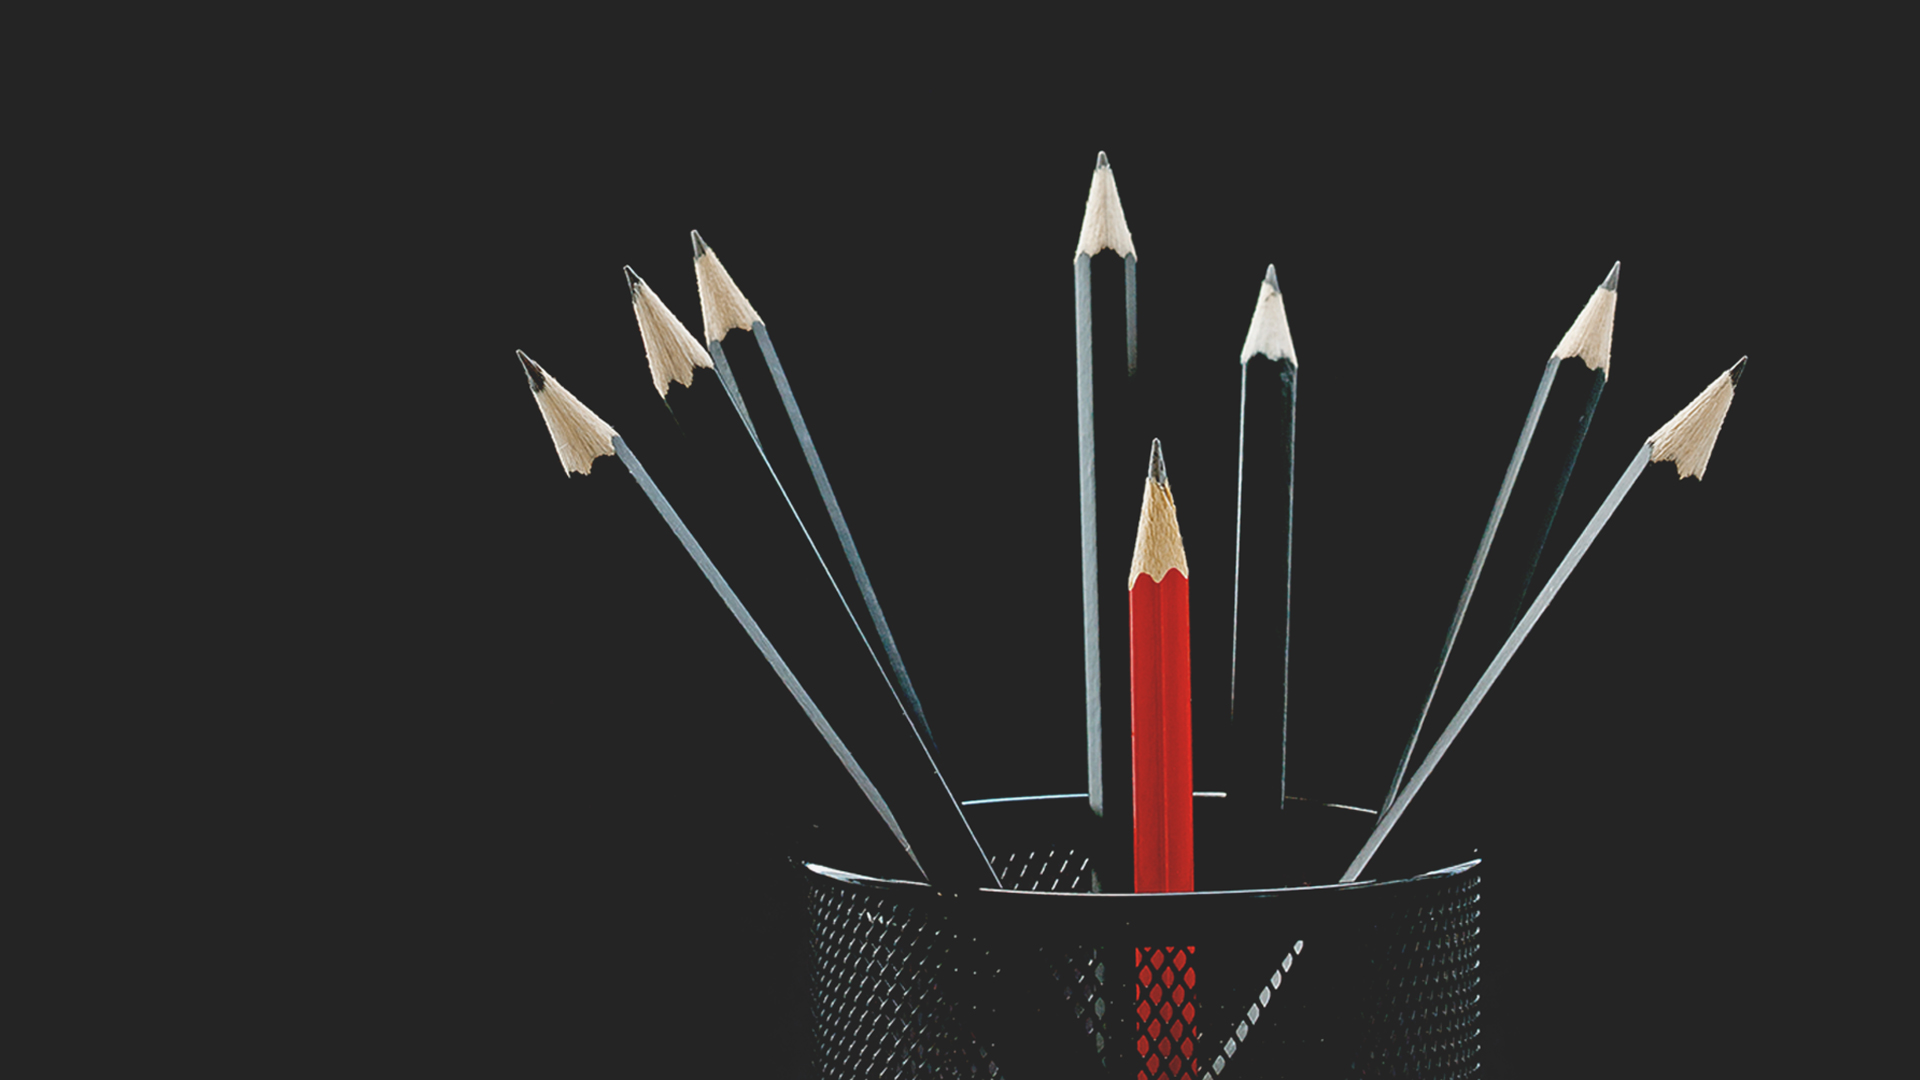 Red pencil amongst black pencils